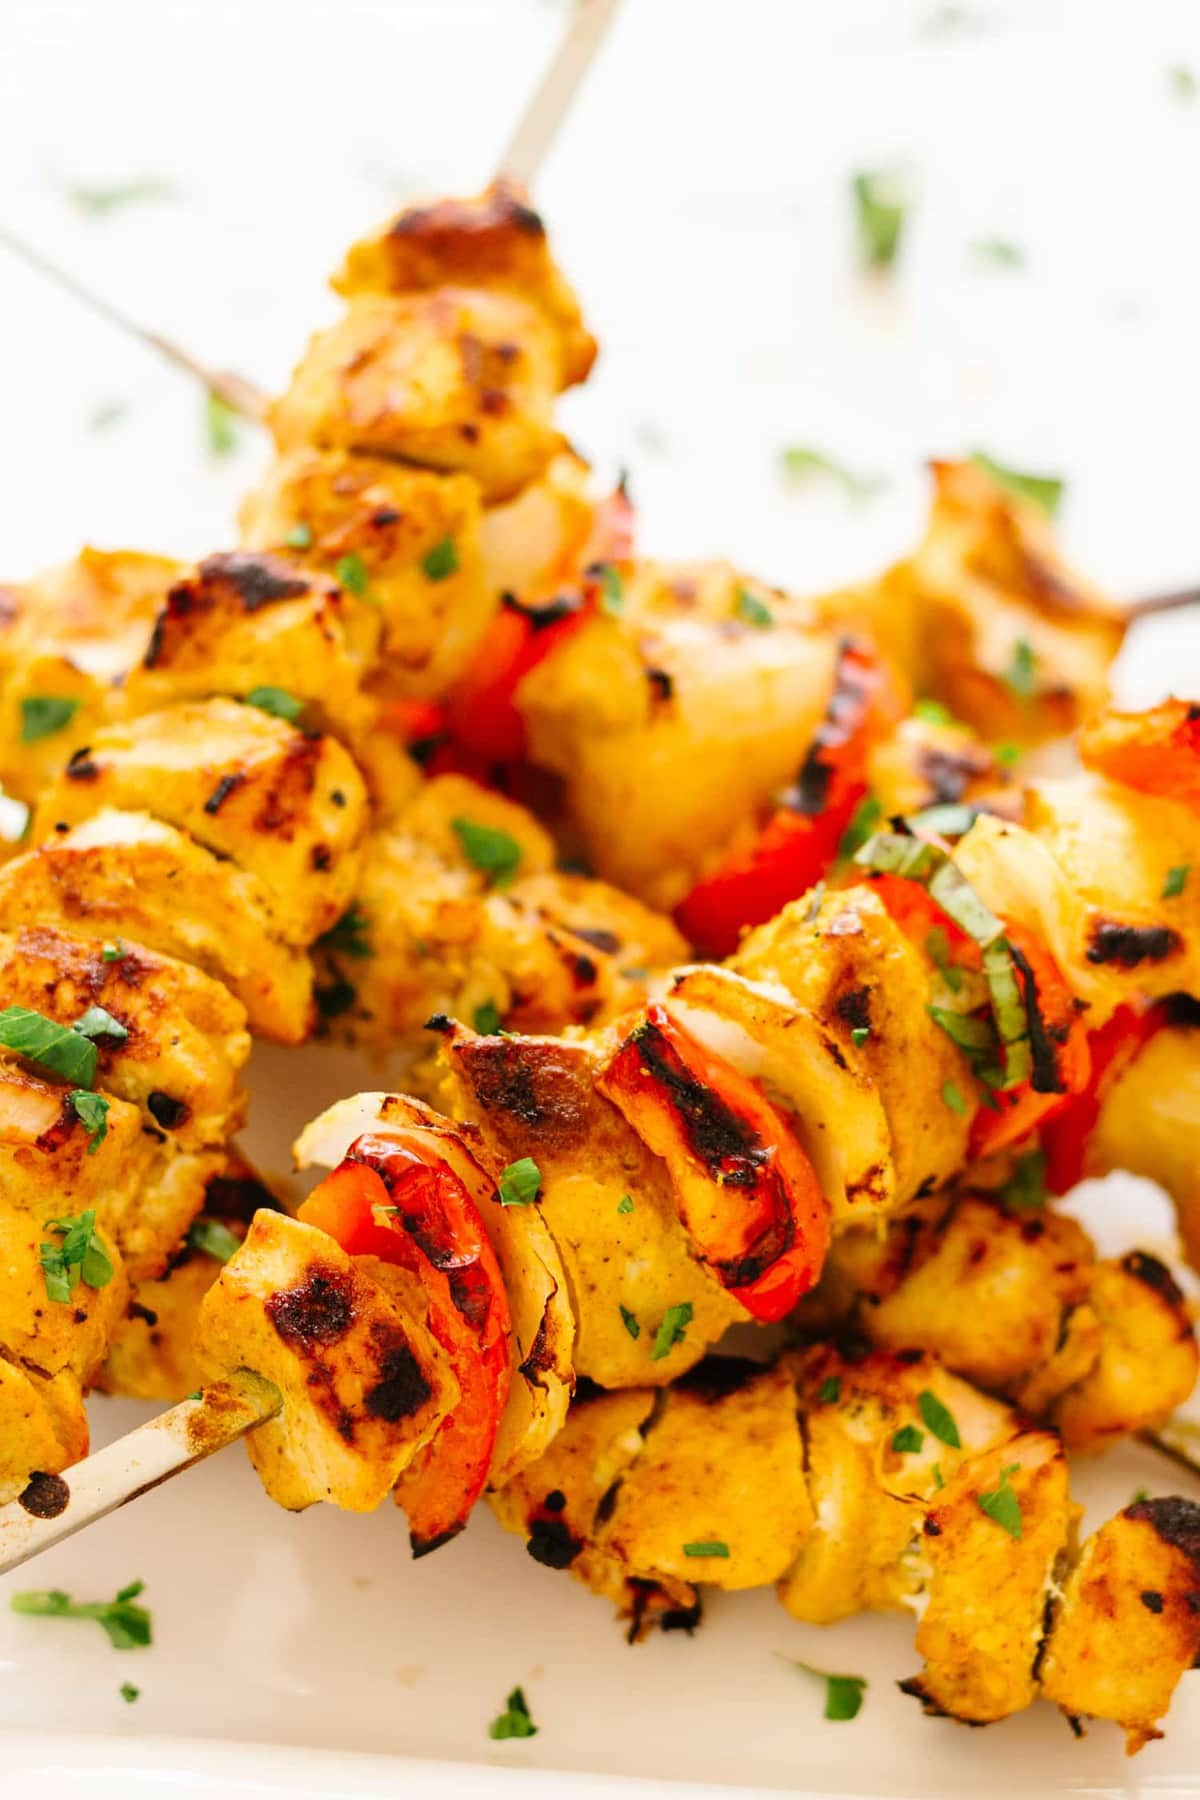 pieces of Tandoori chicken, onion, and red pepper on wooden skewers